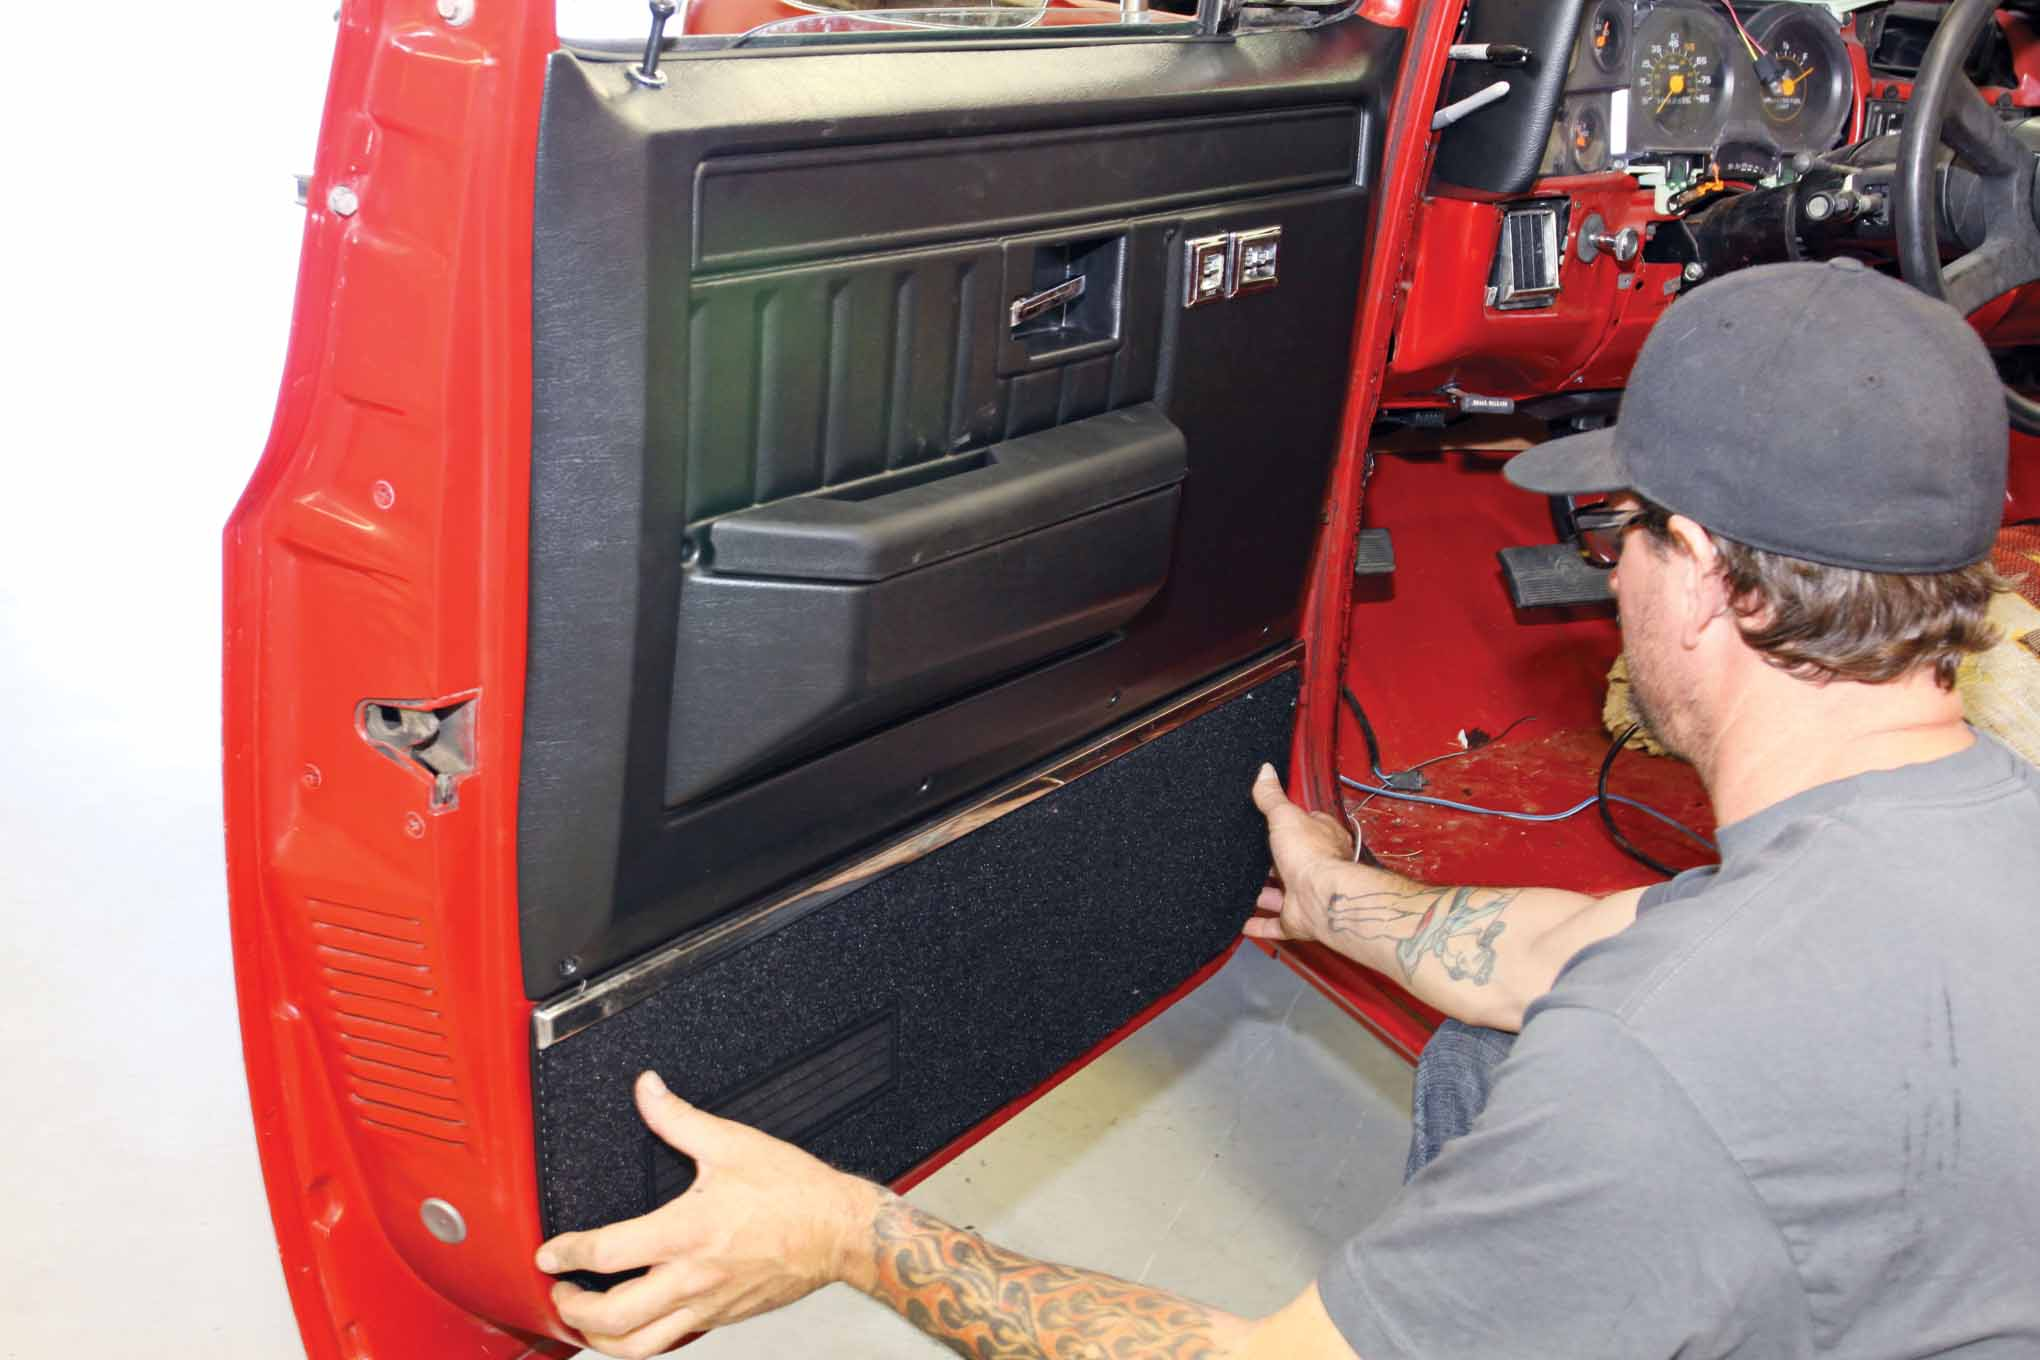 New door panels make a major improvement in appearance. The old ones unscrewed and popped up away from the door. The new door panel was hung over the door with the window down and then tapped down into place.